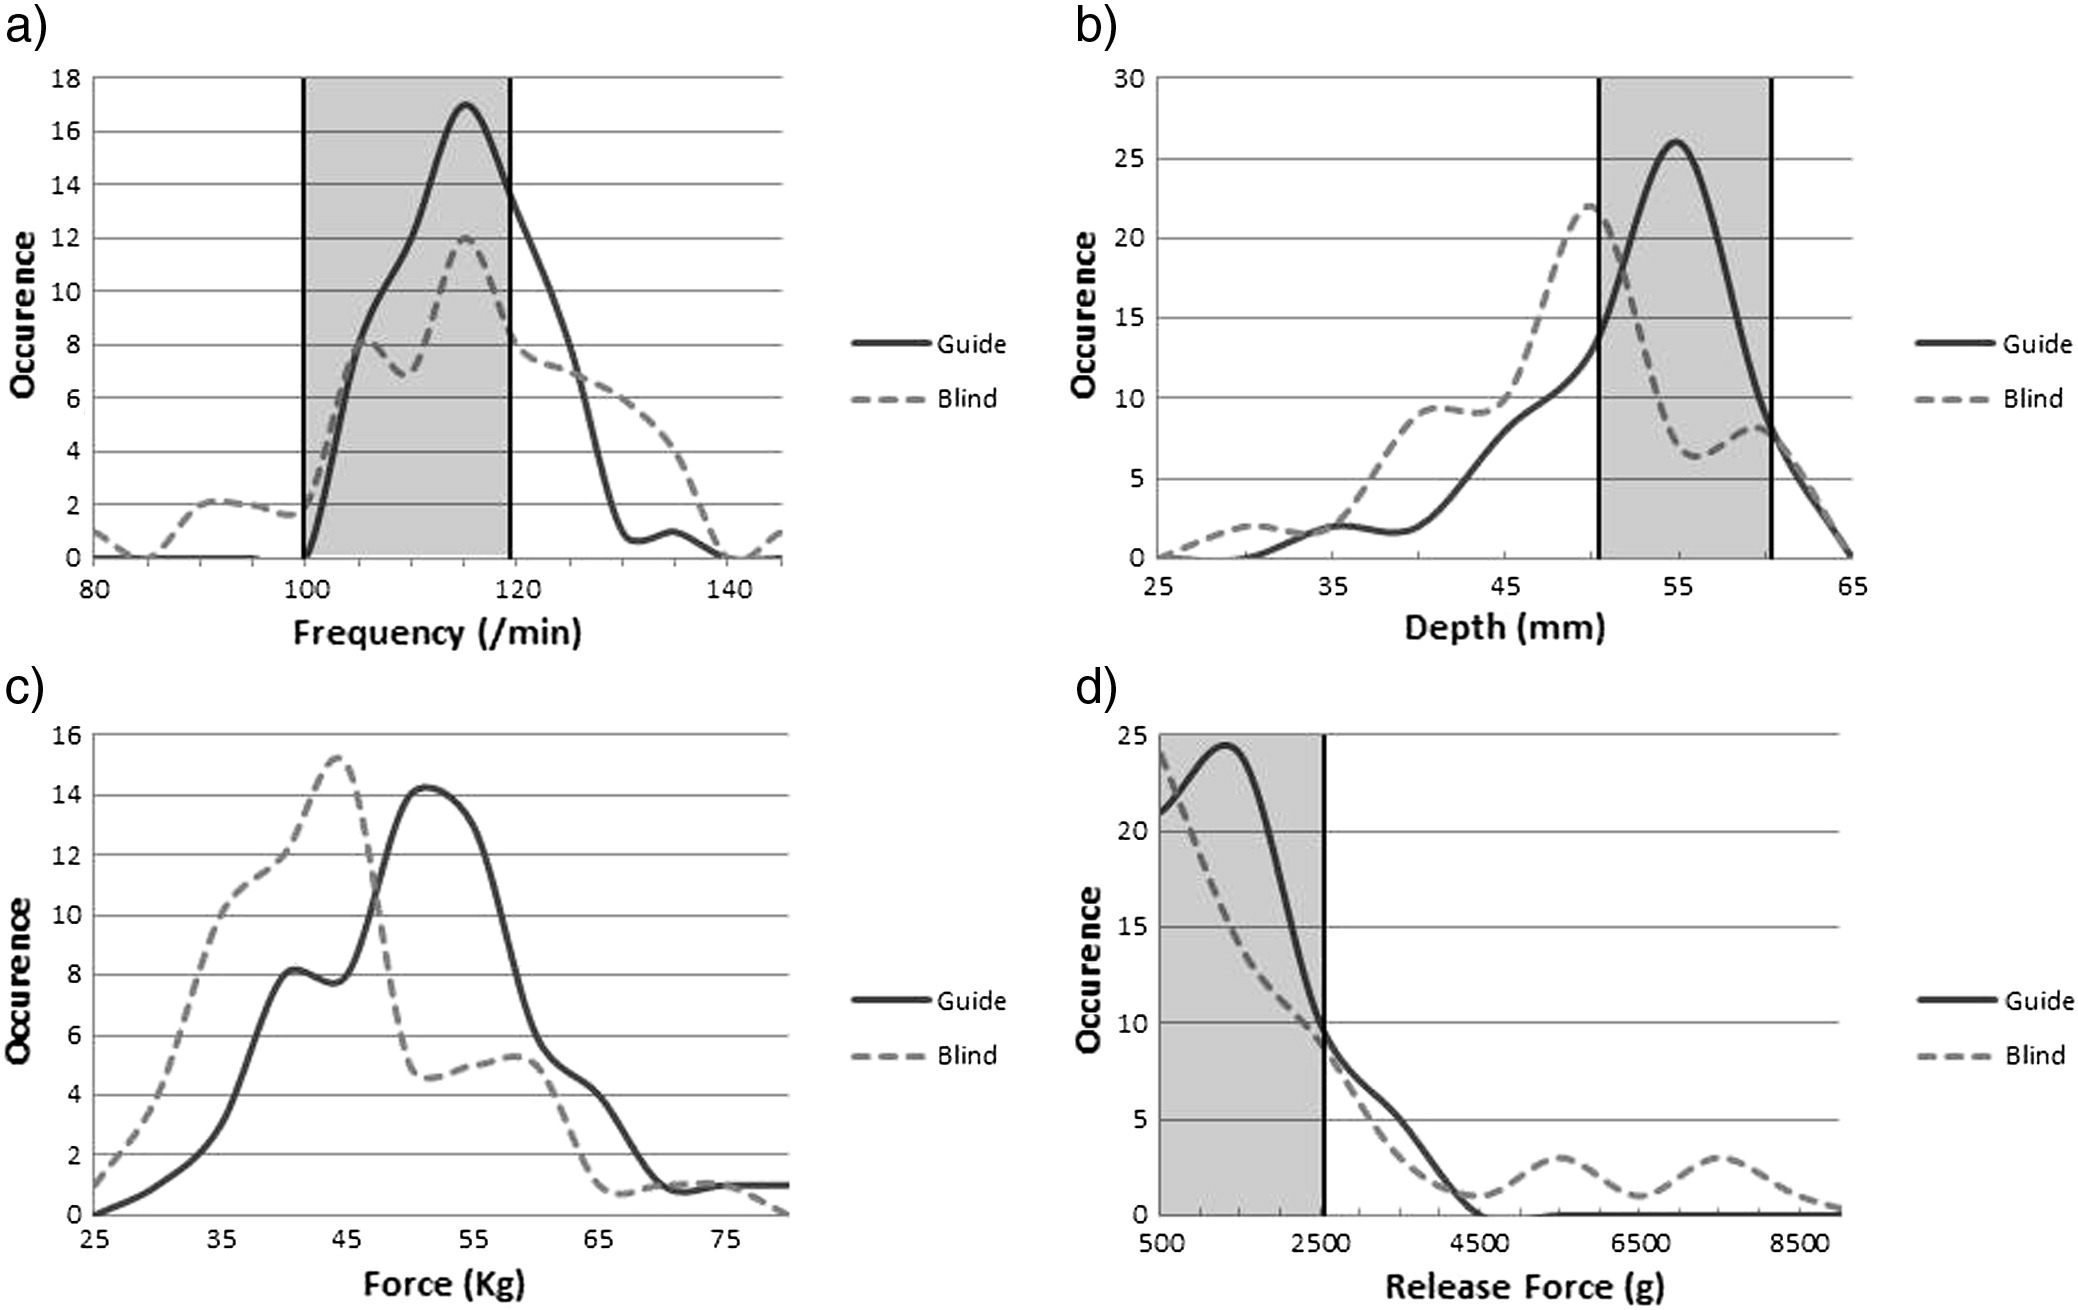 Impact Of A Feedback Device On Chest Compression Quality